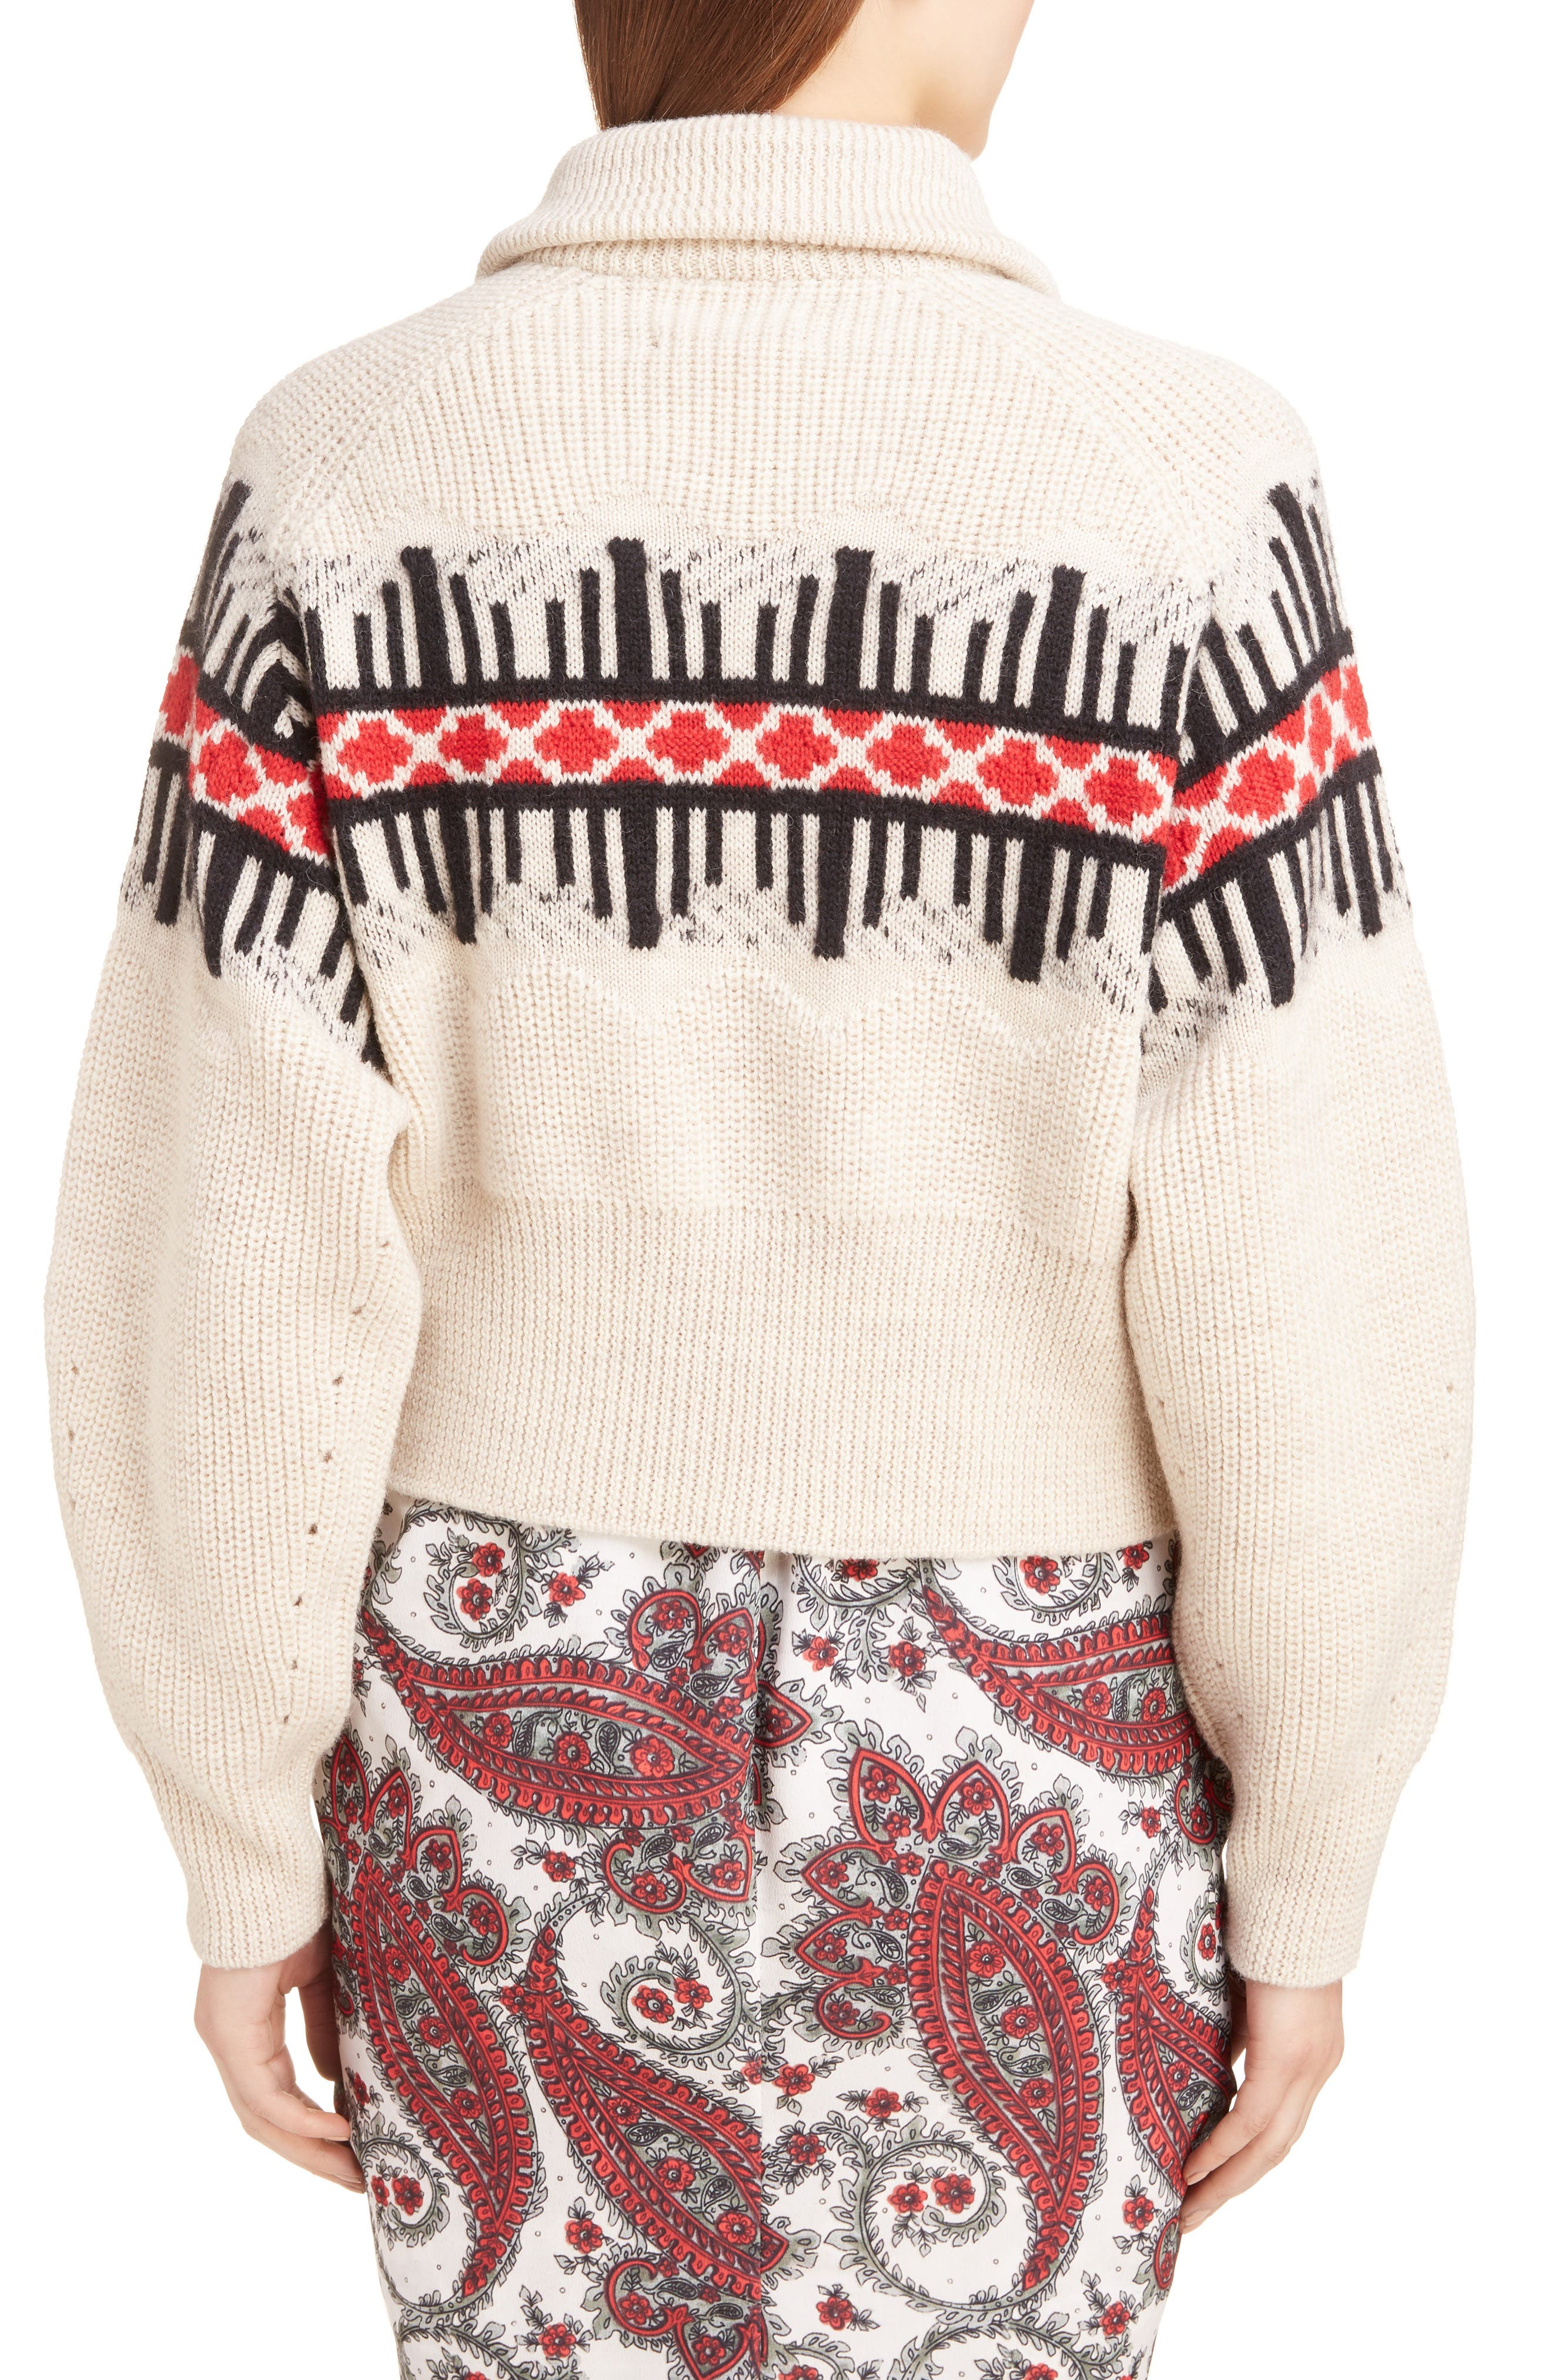 Curtis Wool Blend Sweater,                             Alternate thumbnail 2, color,                             250